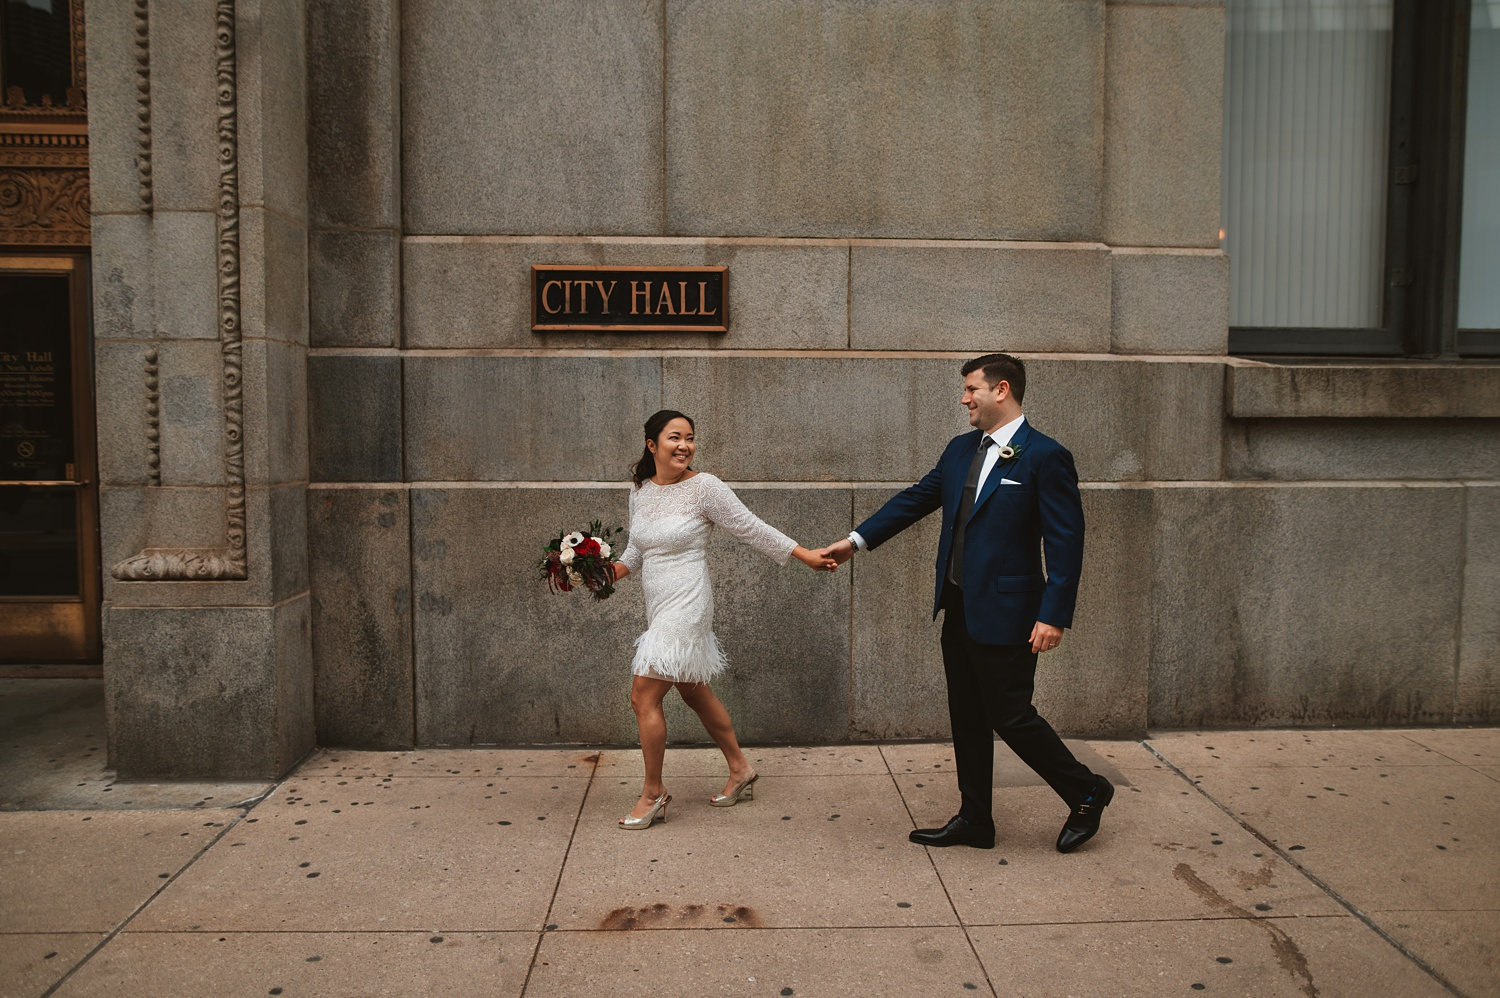 Chicago Courthouse Elopement wedding - The Adamkovi, city hall sign